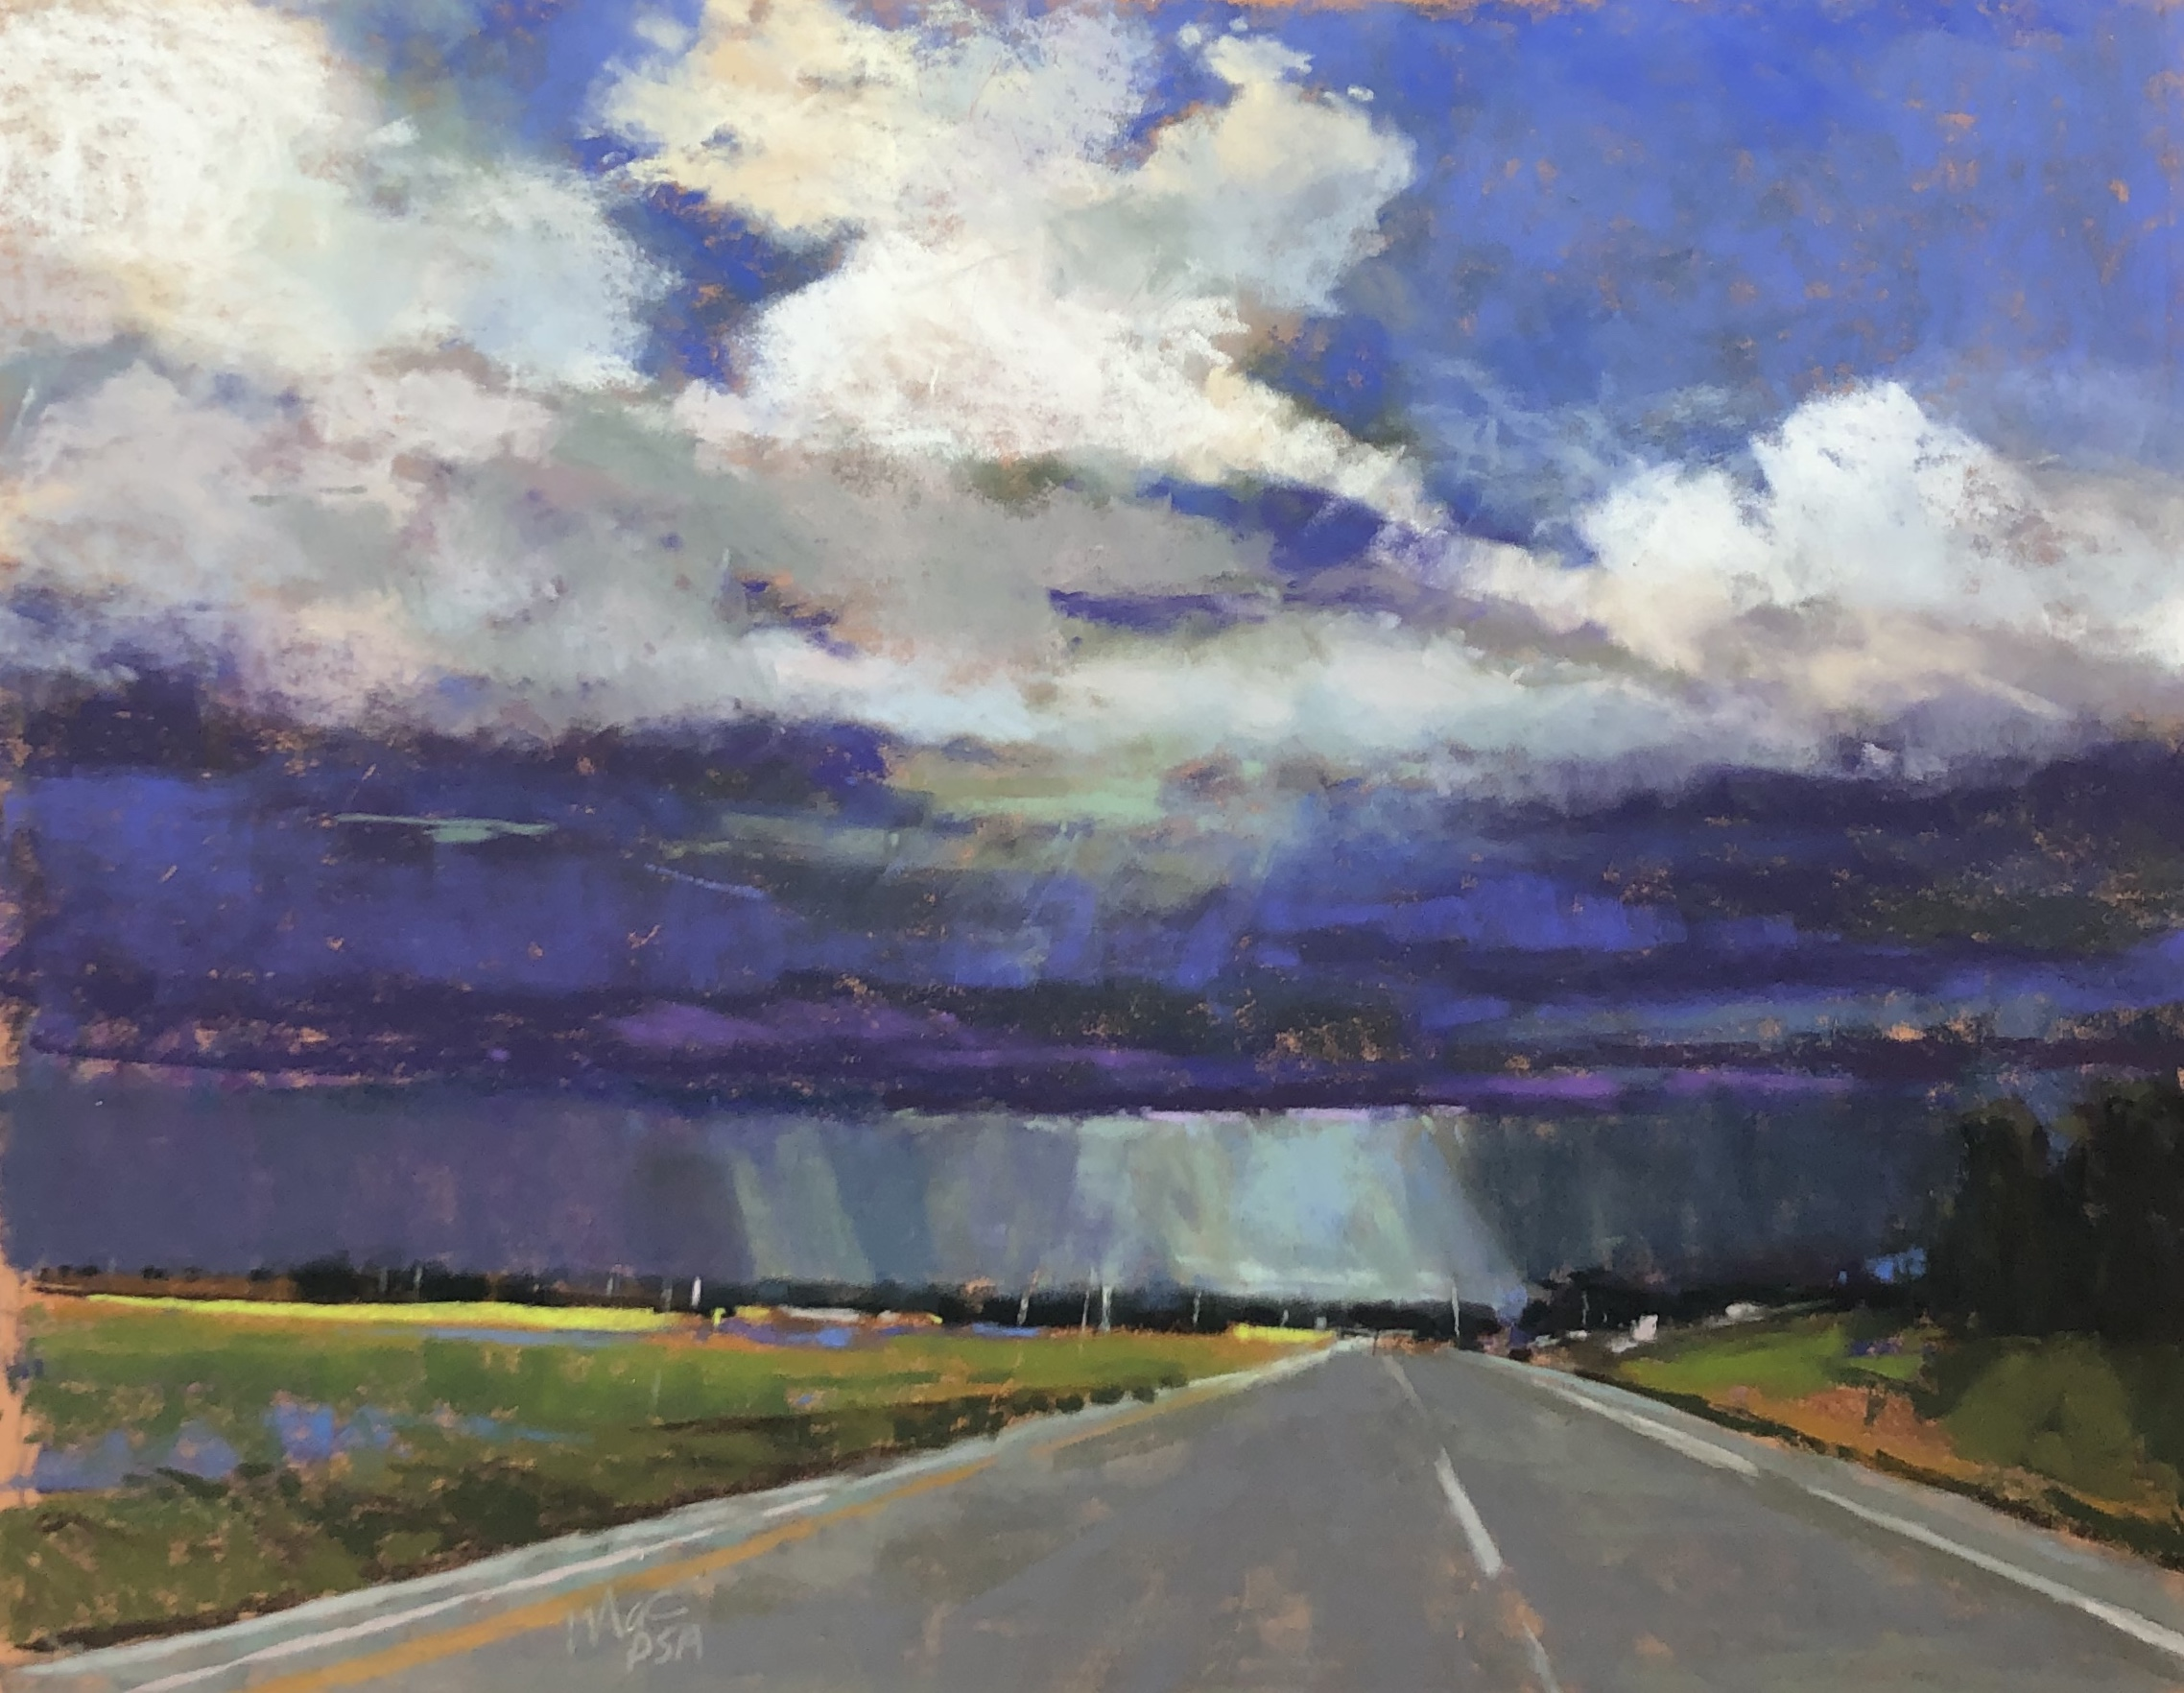 Mac-Schueppert-Chasing-the-Storm-pastel